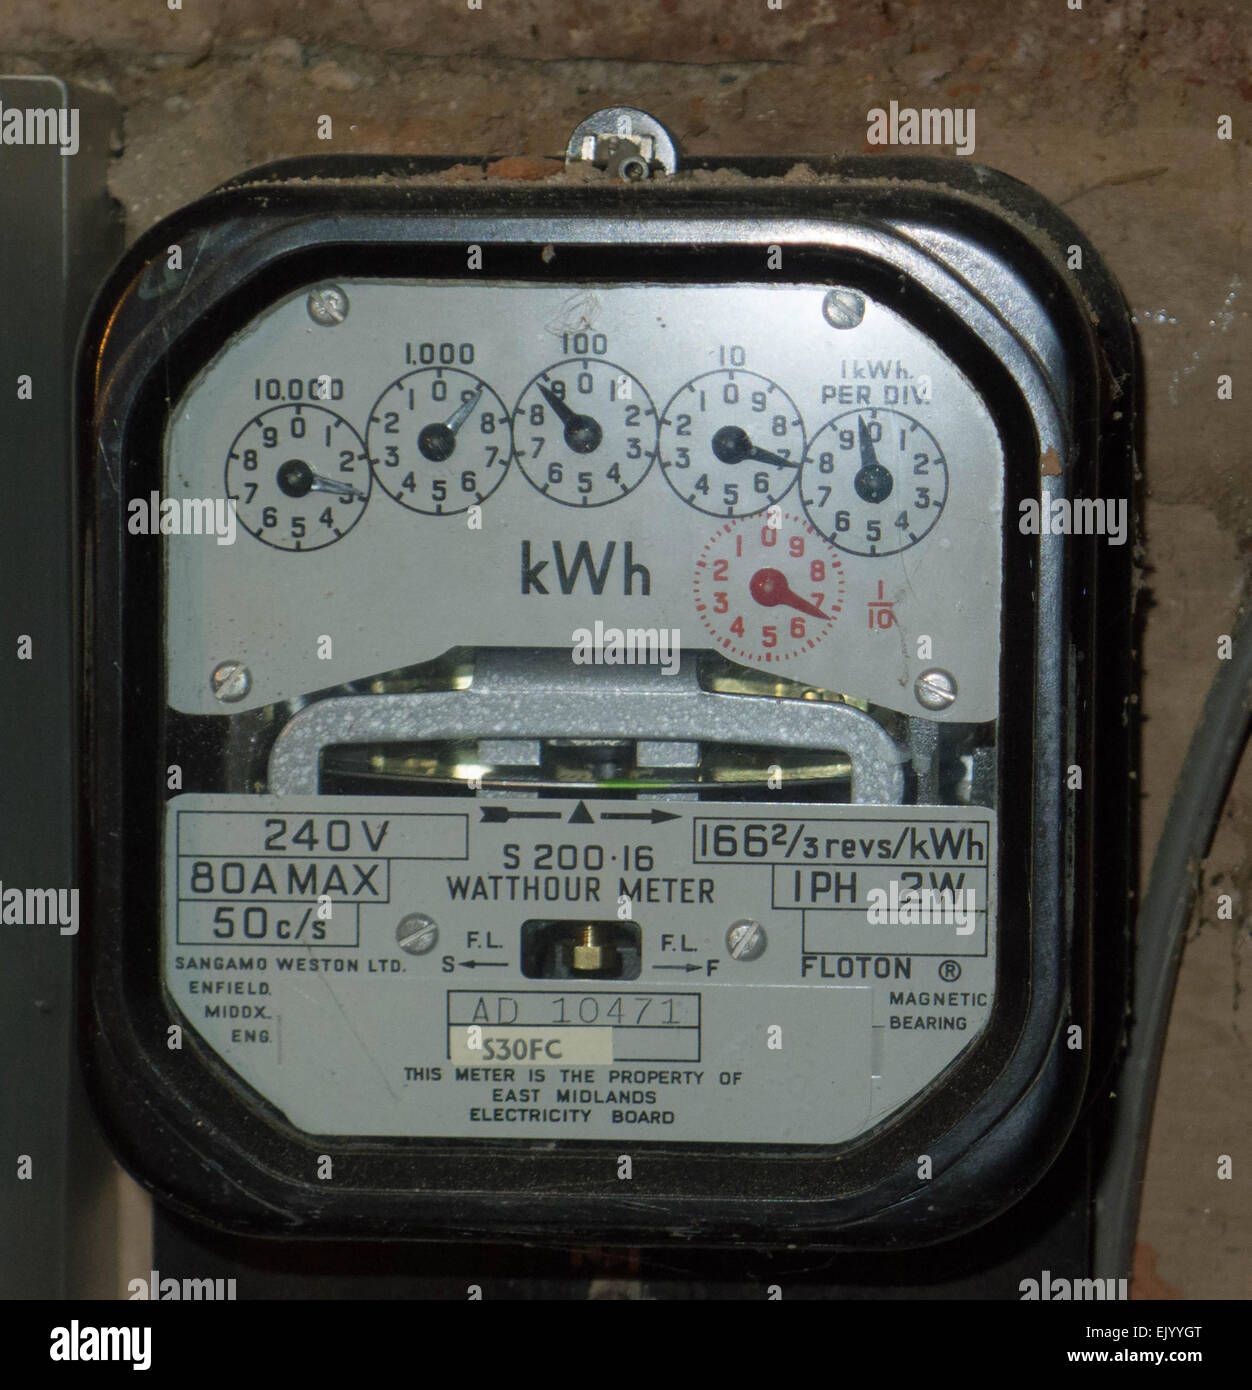 About electric circuits - electrical meter reading